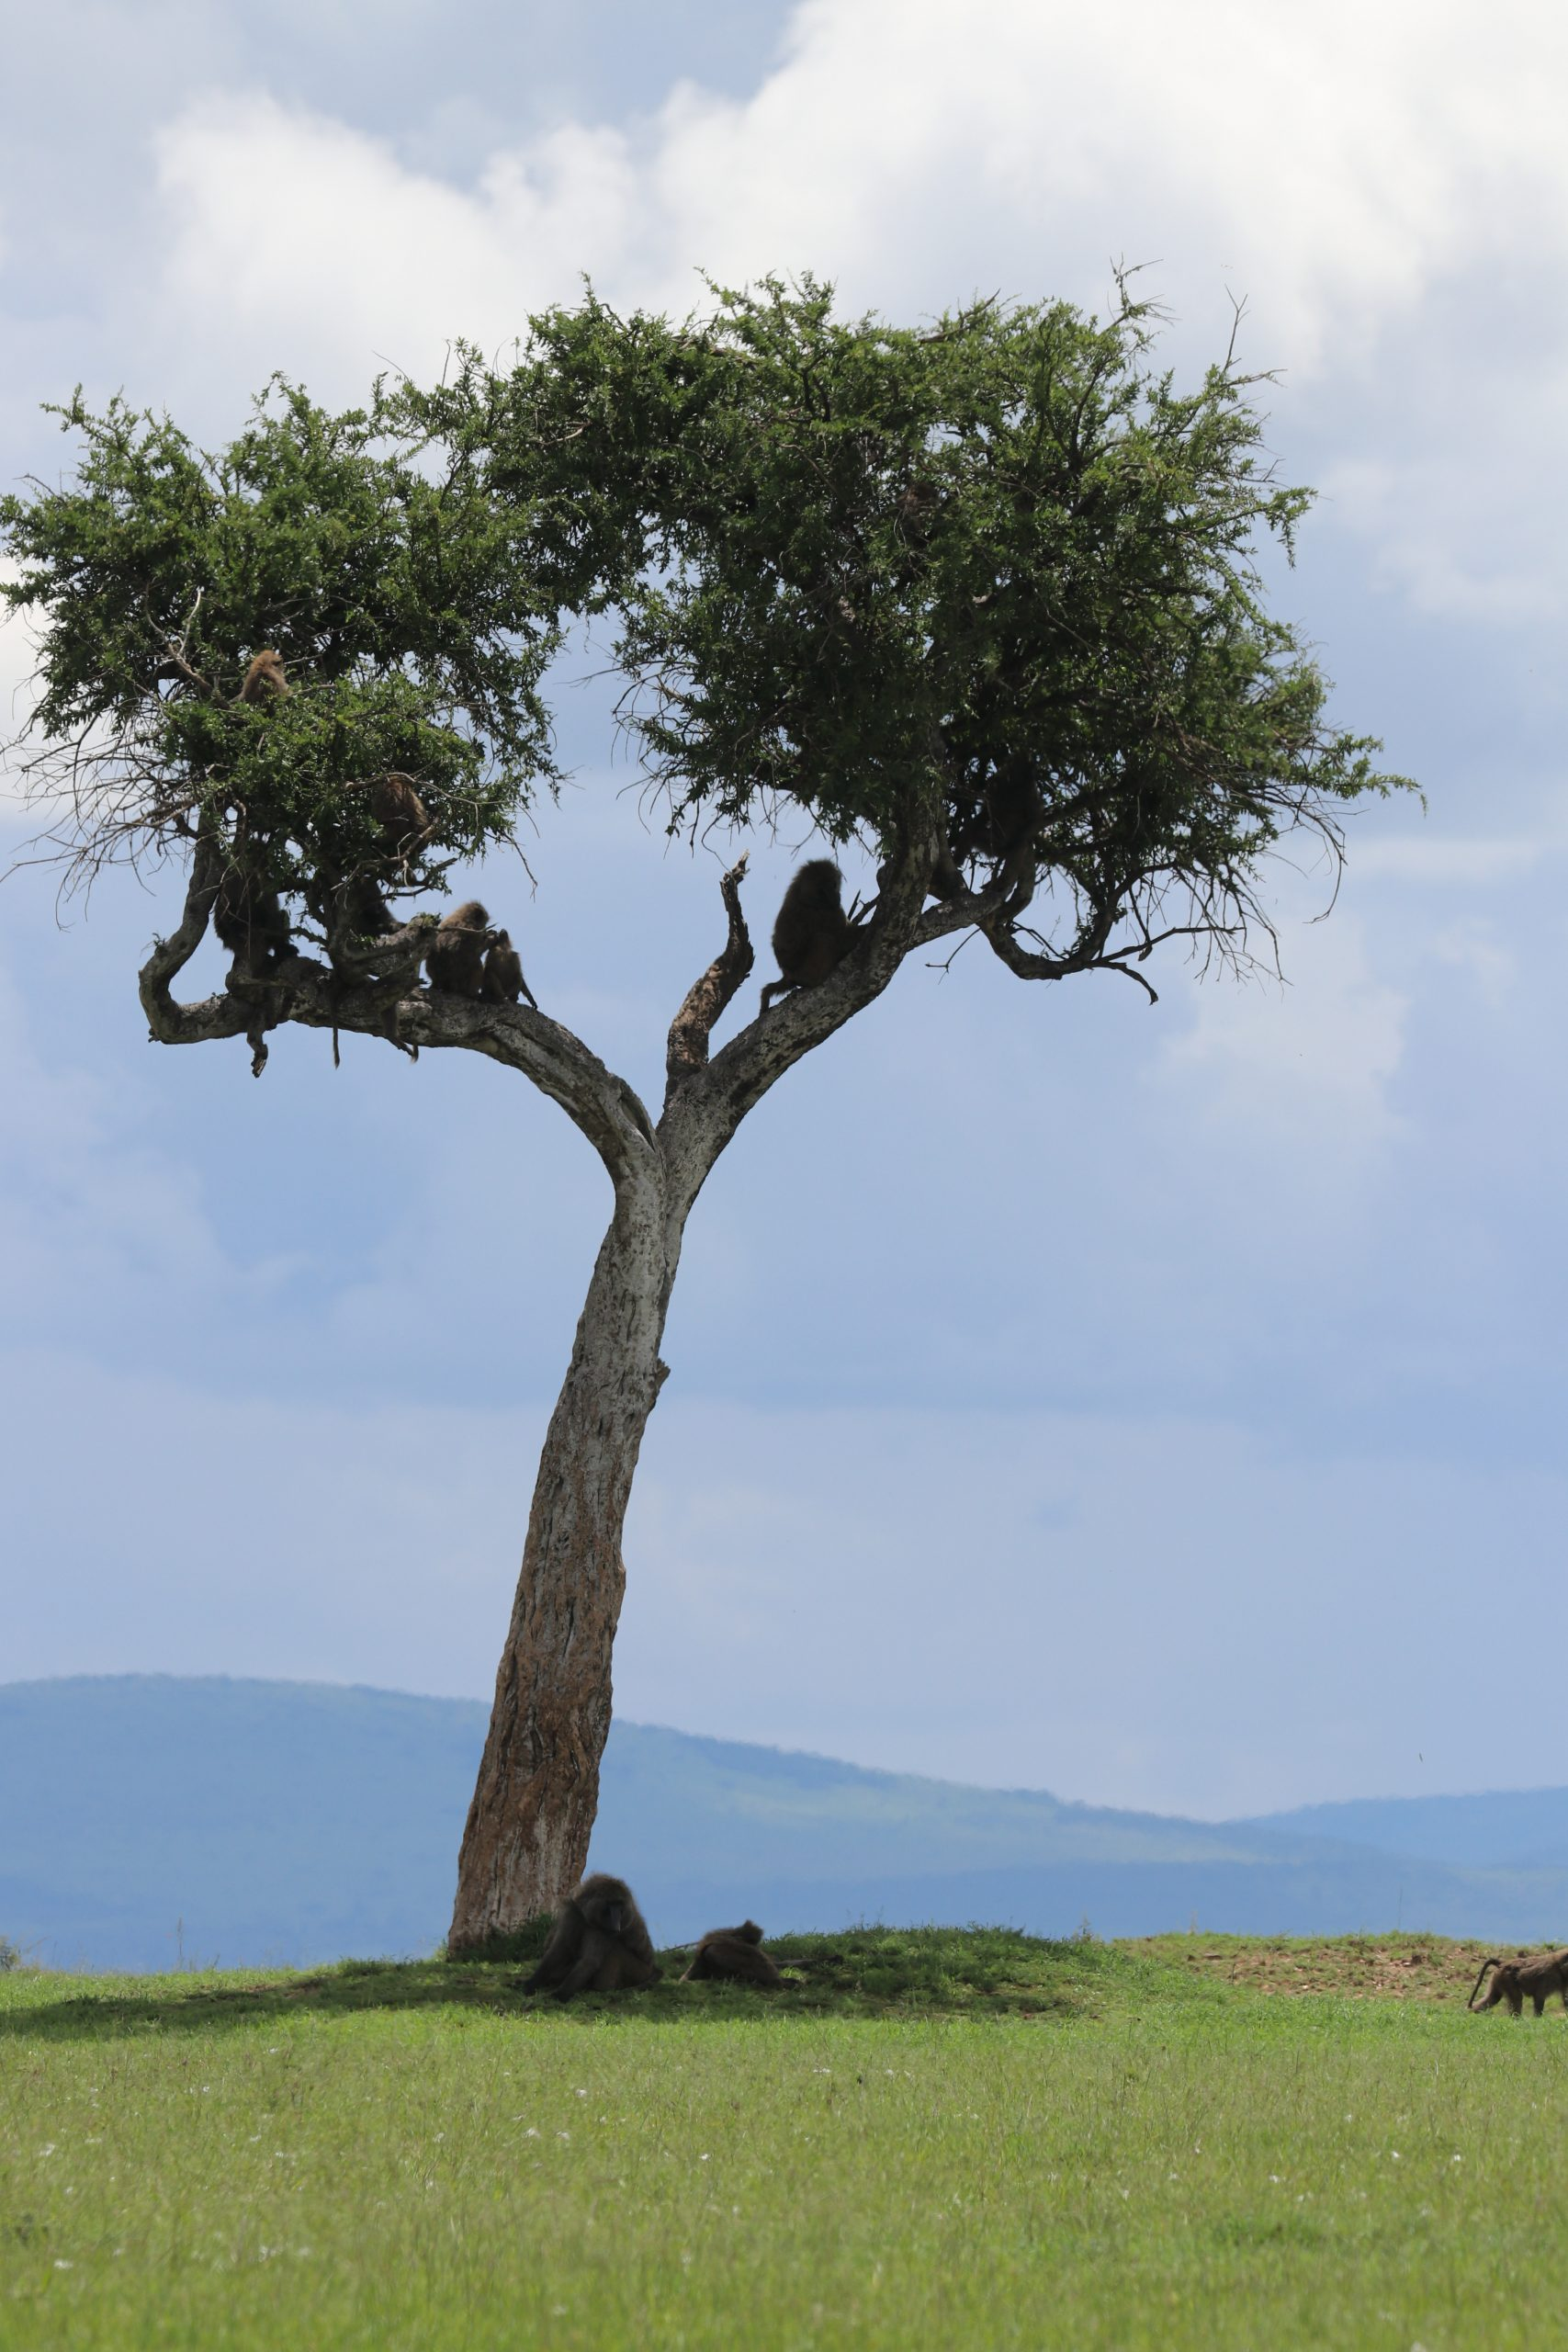 group of baboons perched in a tree